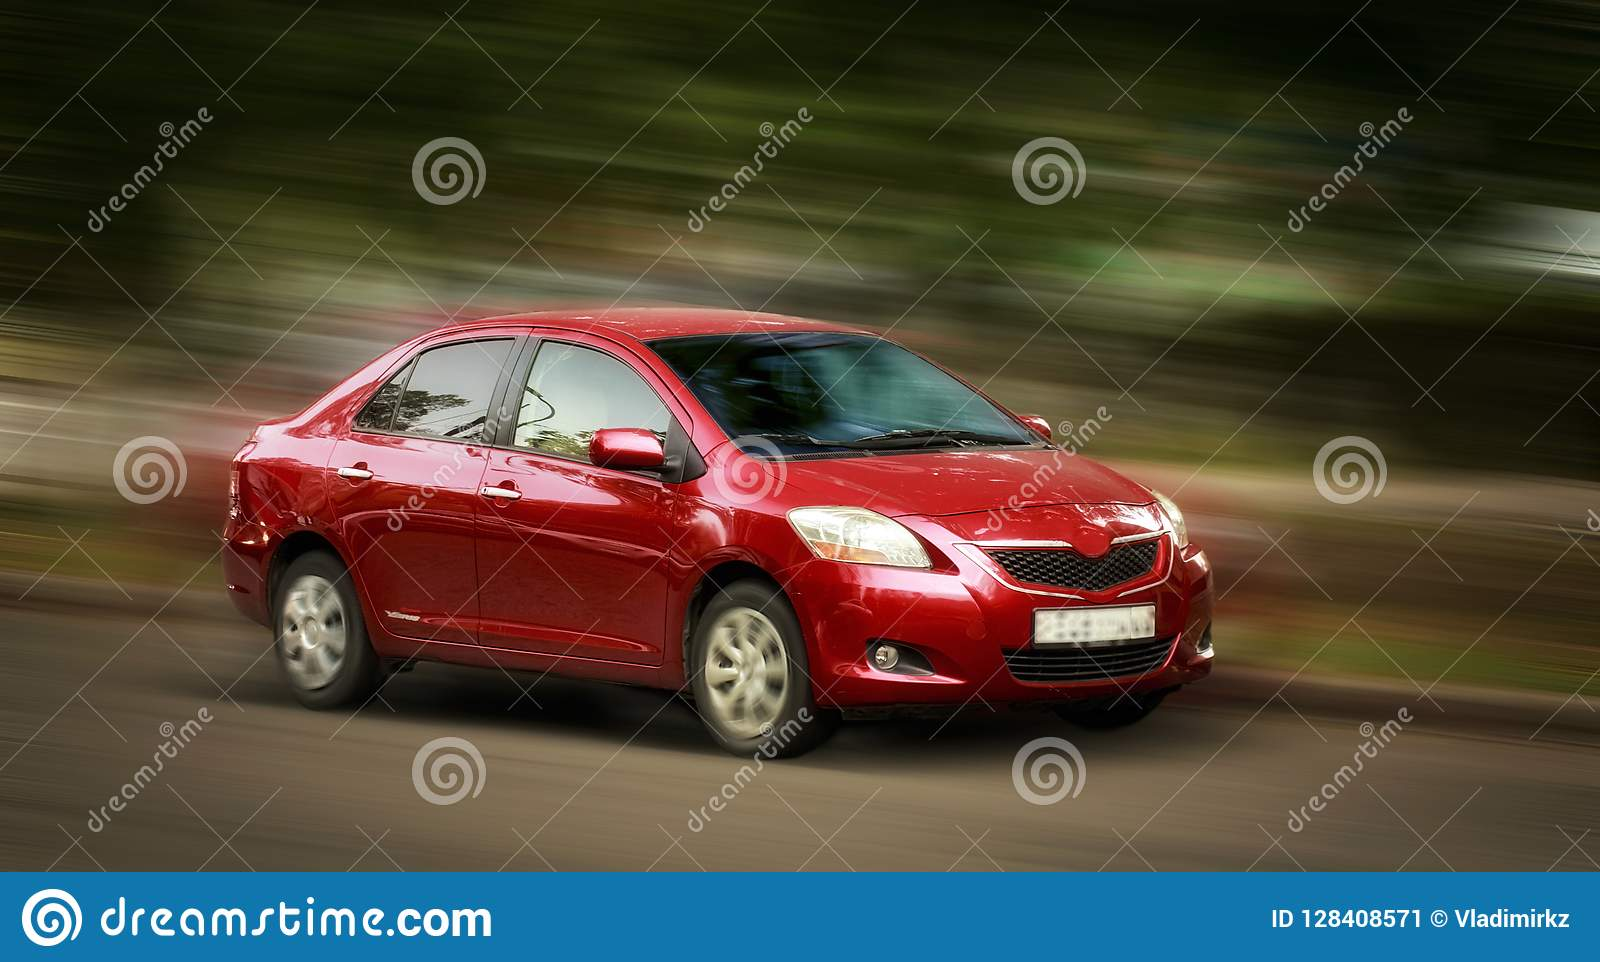 Toyota red car.